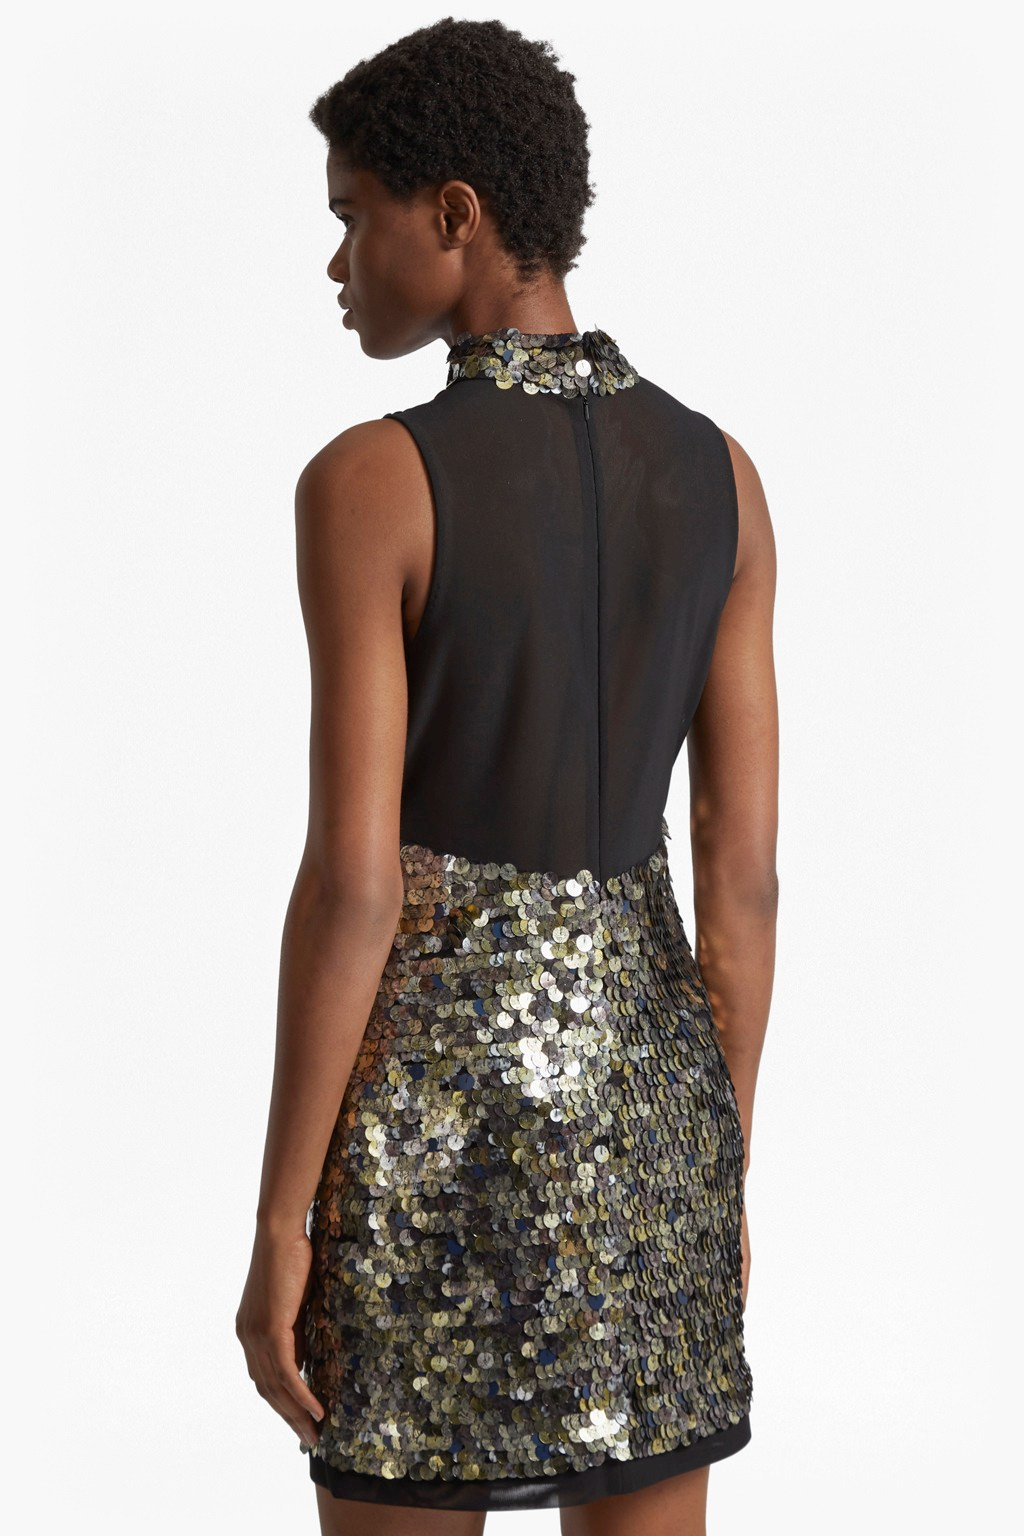 14b2989571d loading images... loading images... Moon Rock Sequin Tunic Dress